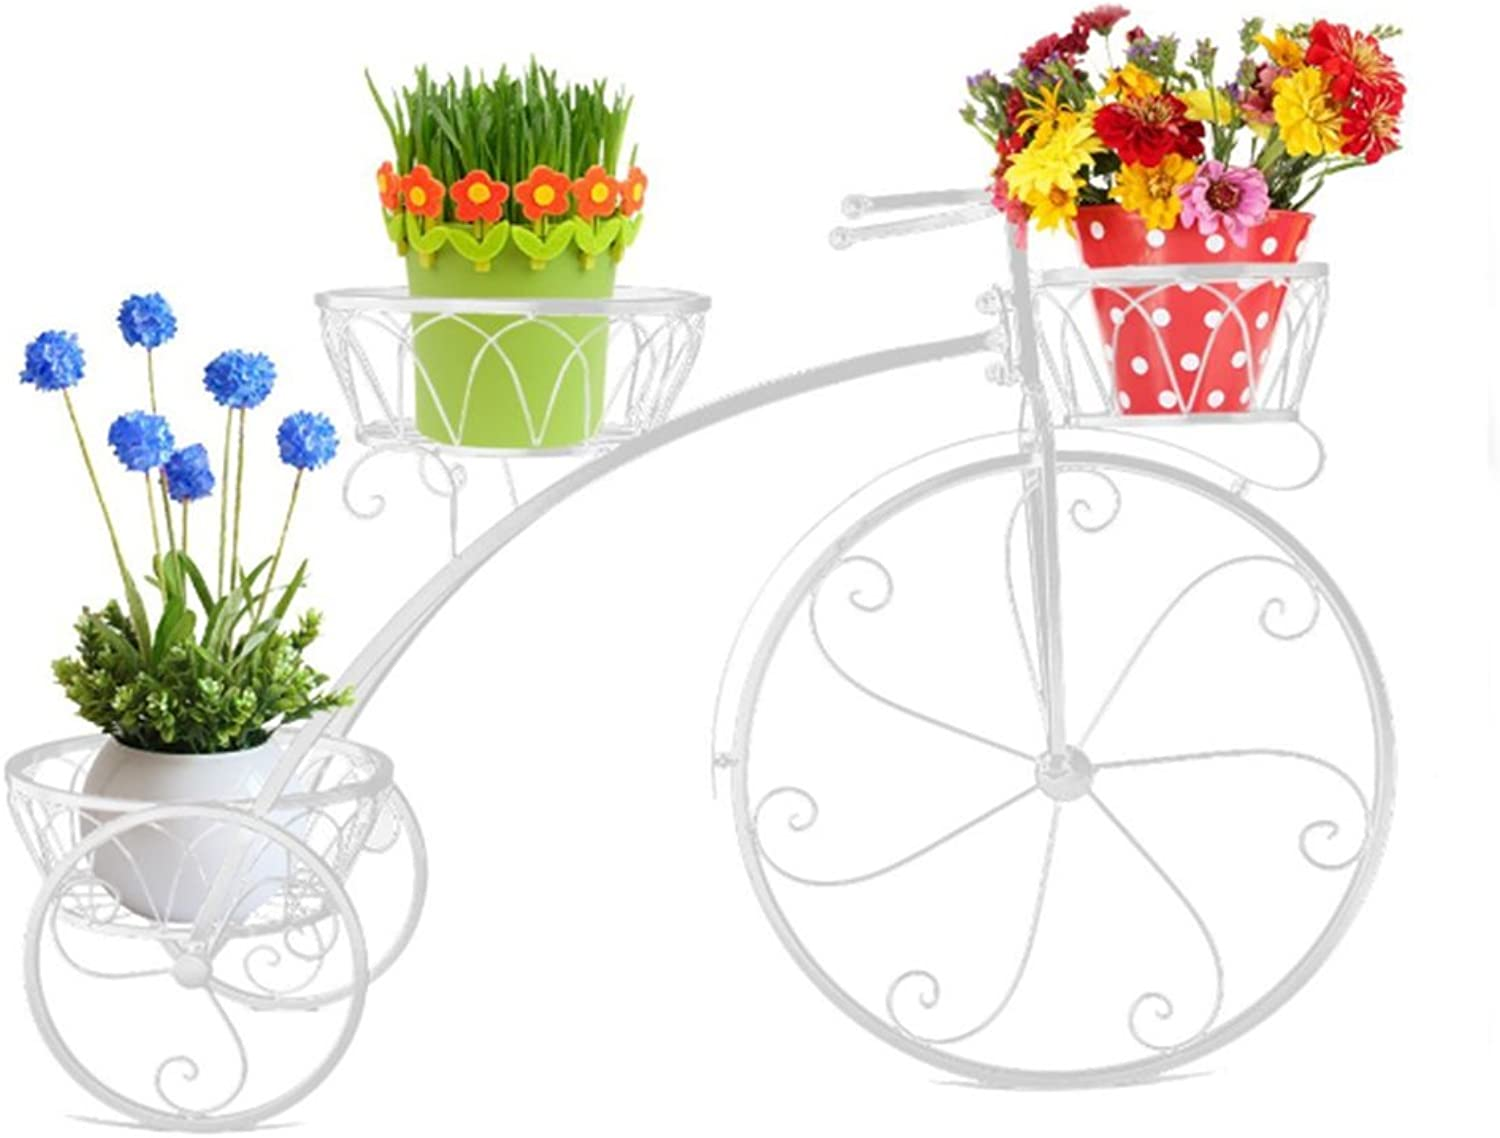 Plant Storage Rack Wrought Iron Flower Stand - Living Room Balcony Decorative Flower Stand - Multi-Layer Potted (color   White)